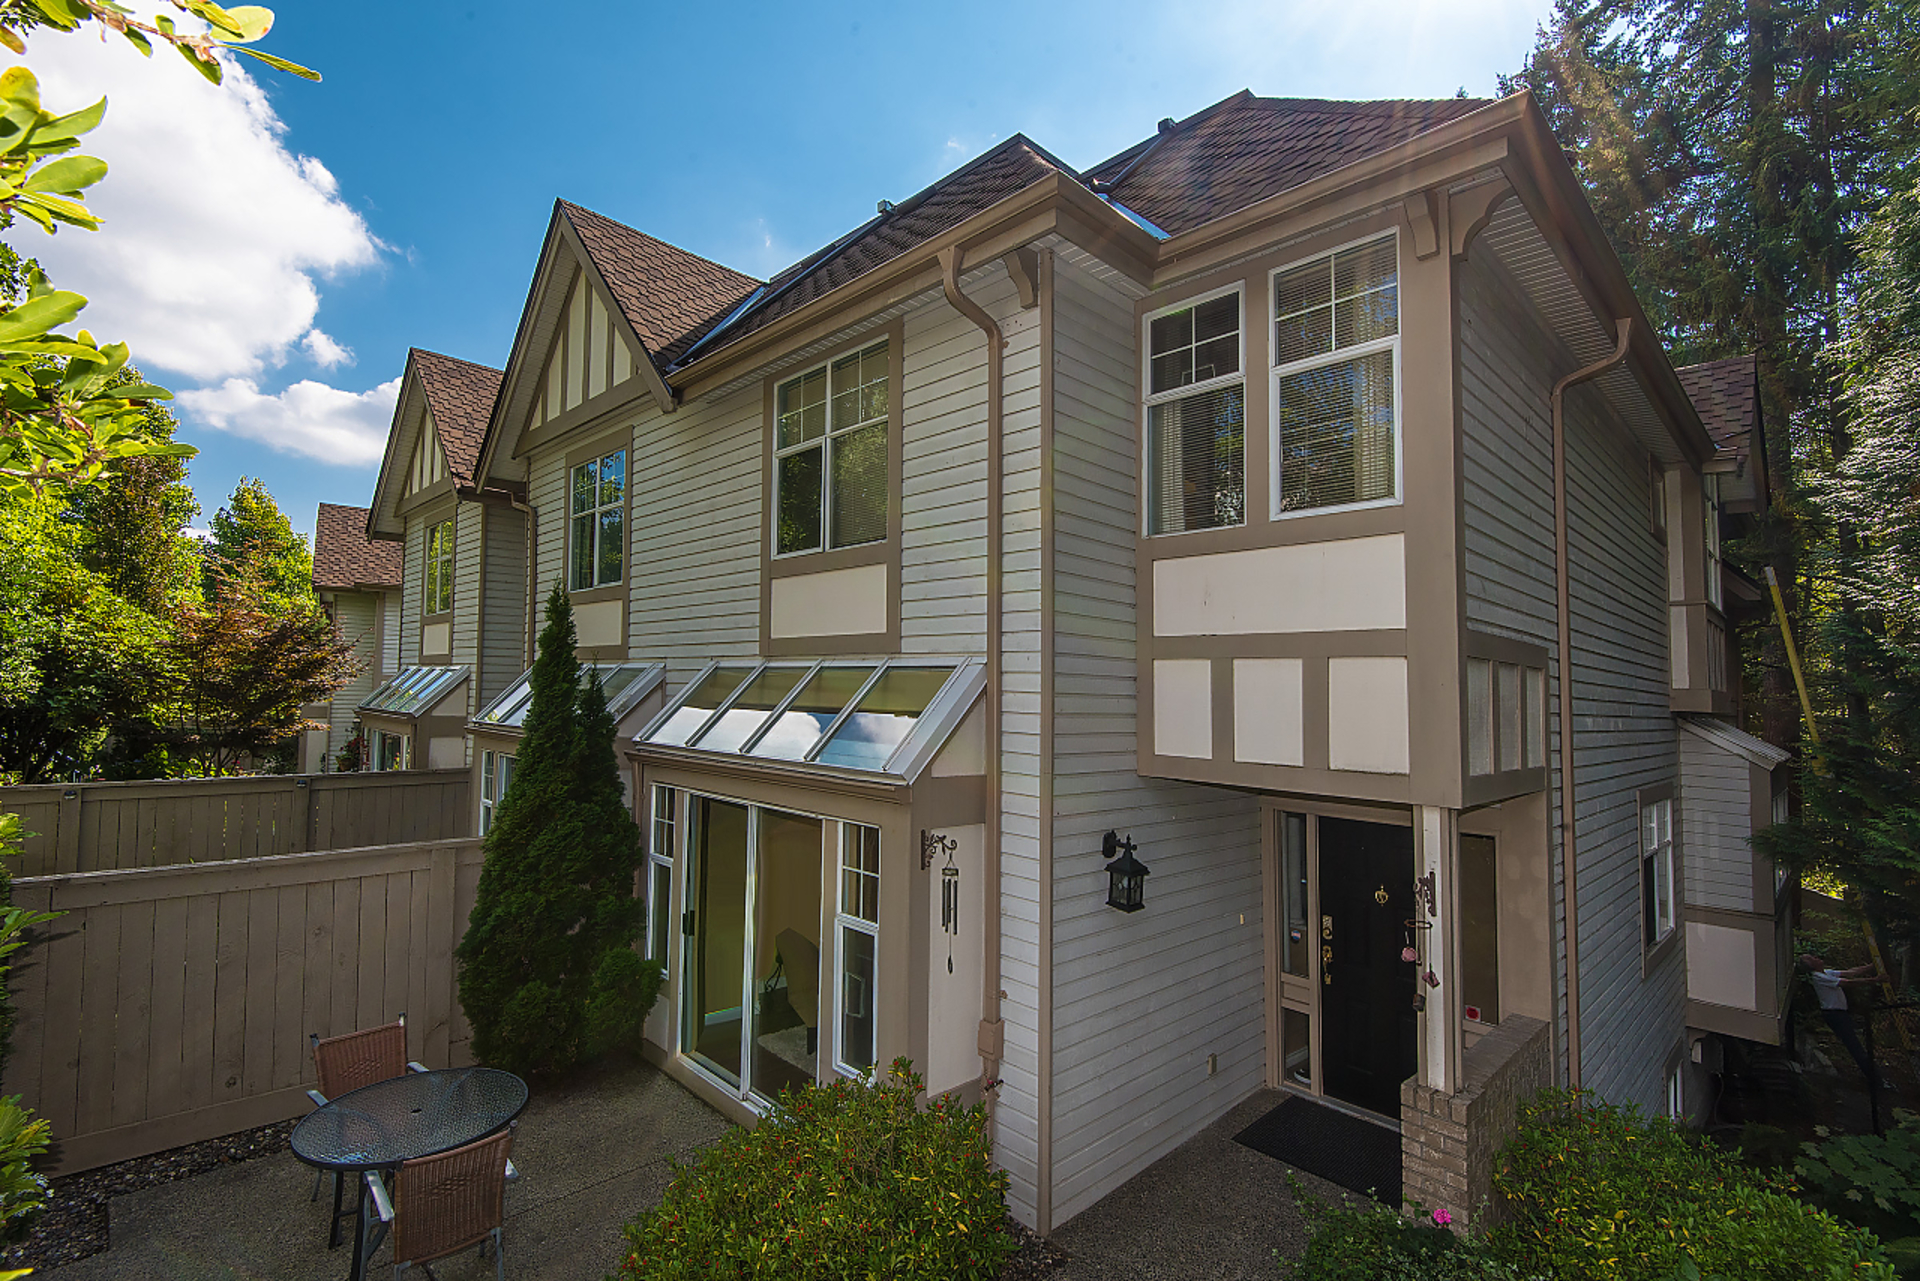 003 at 20 - 1 Aspenwood Drive, Heritage Woods PM, Port Moody